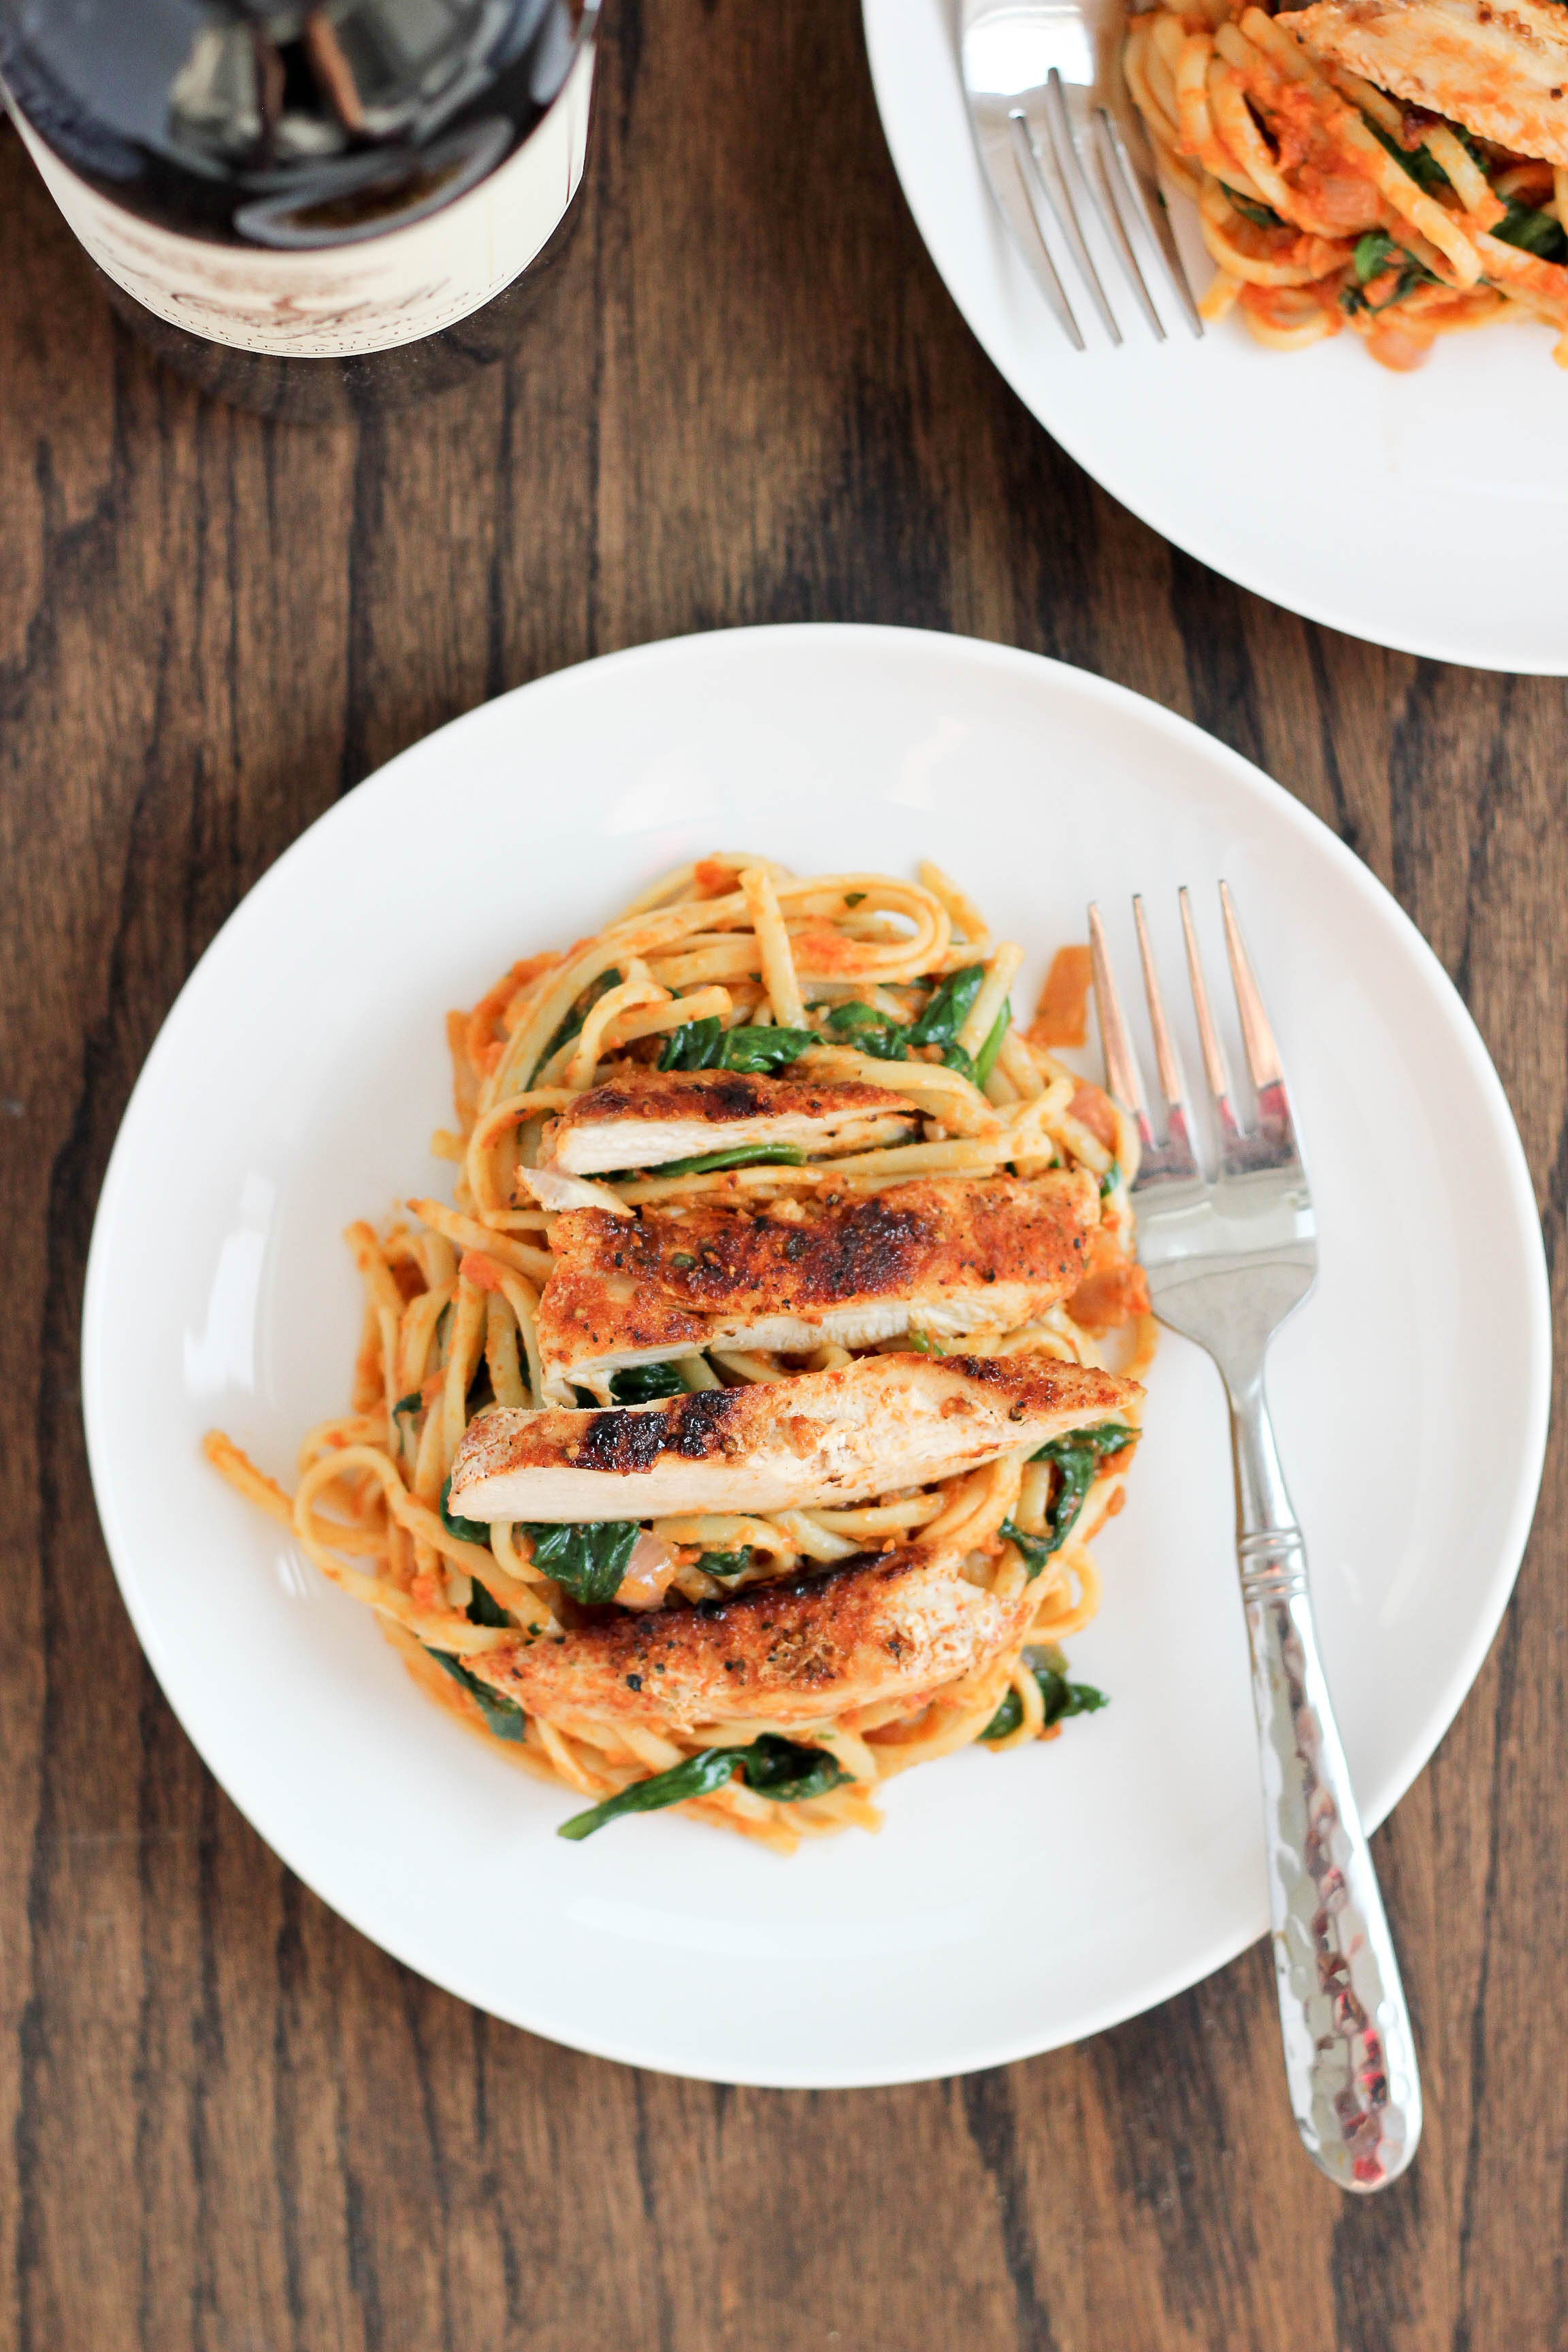 Sun Dried Tomato Pesto Pasta With Blackened Chicken